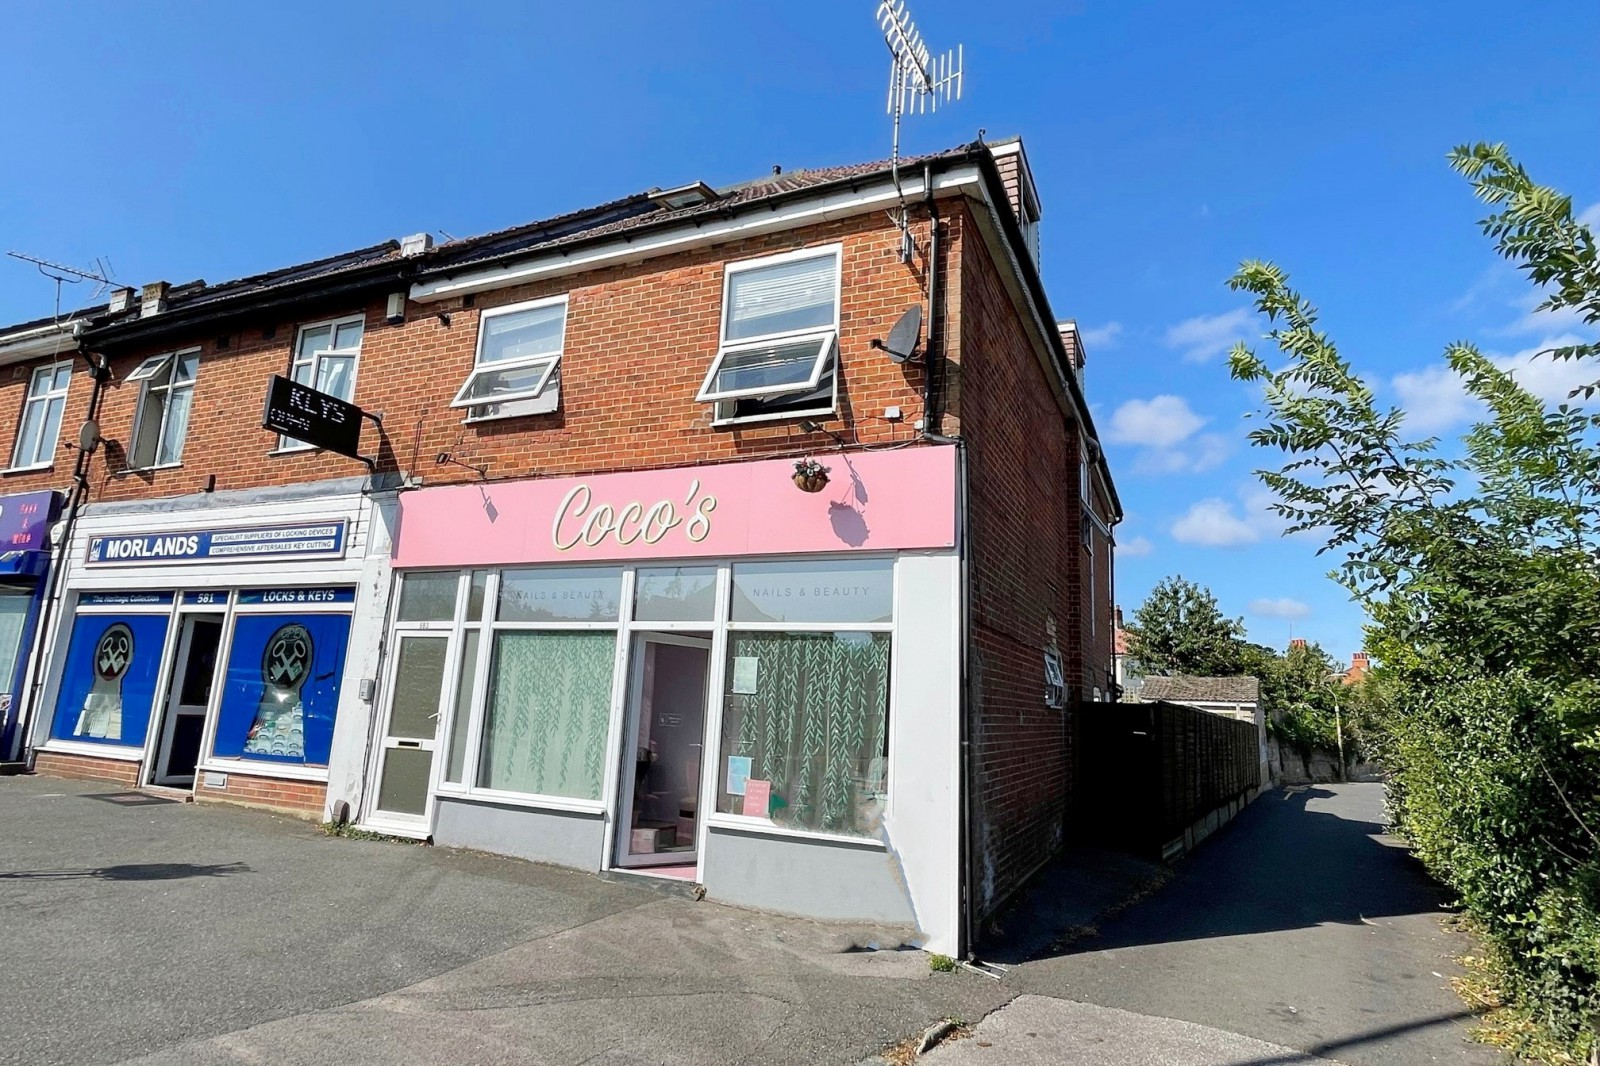 IDEALLY LOCATED ONE BEDROOM APARTMENT WITH NO FOWARD CHAIN